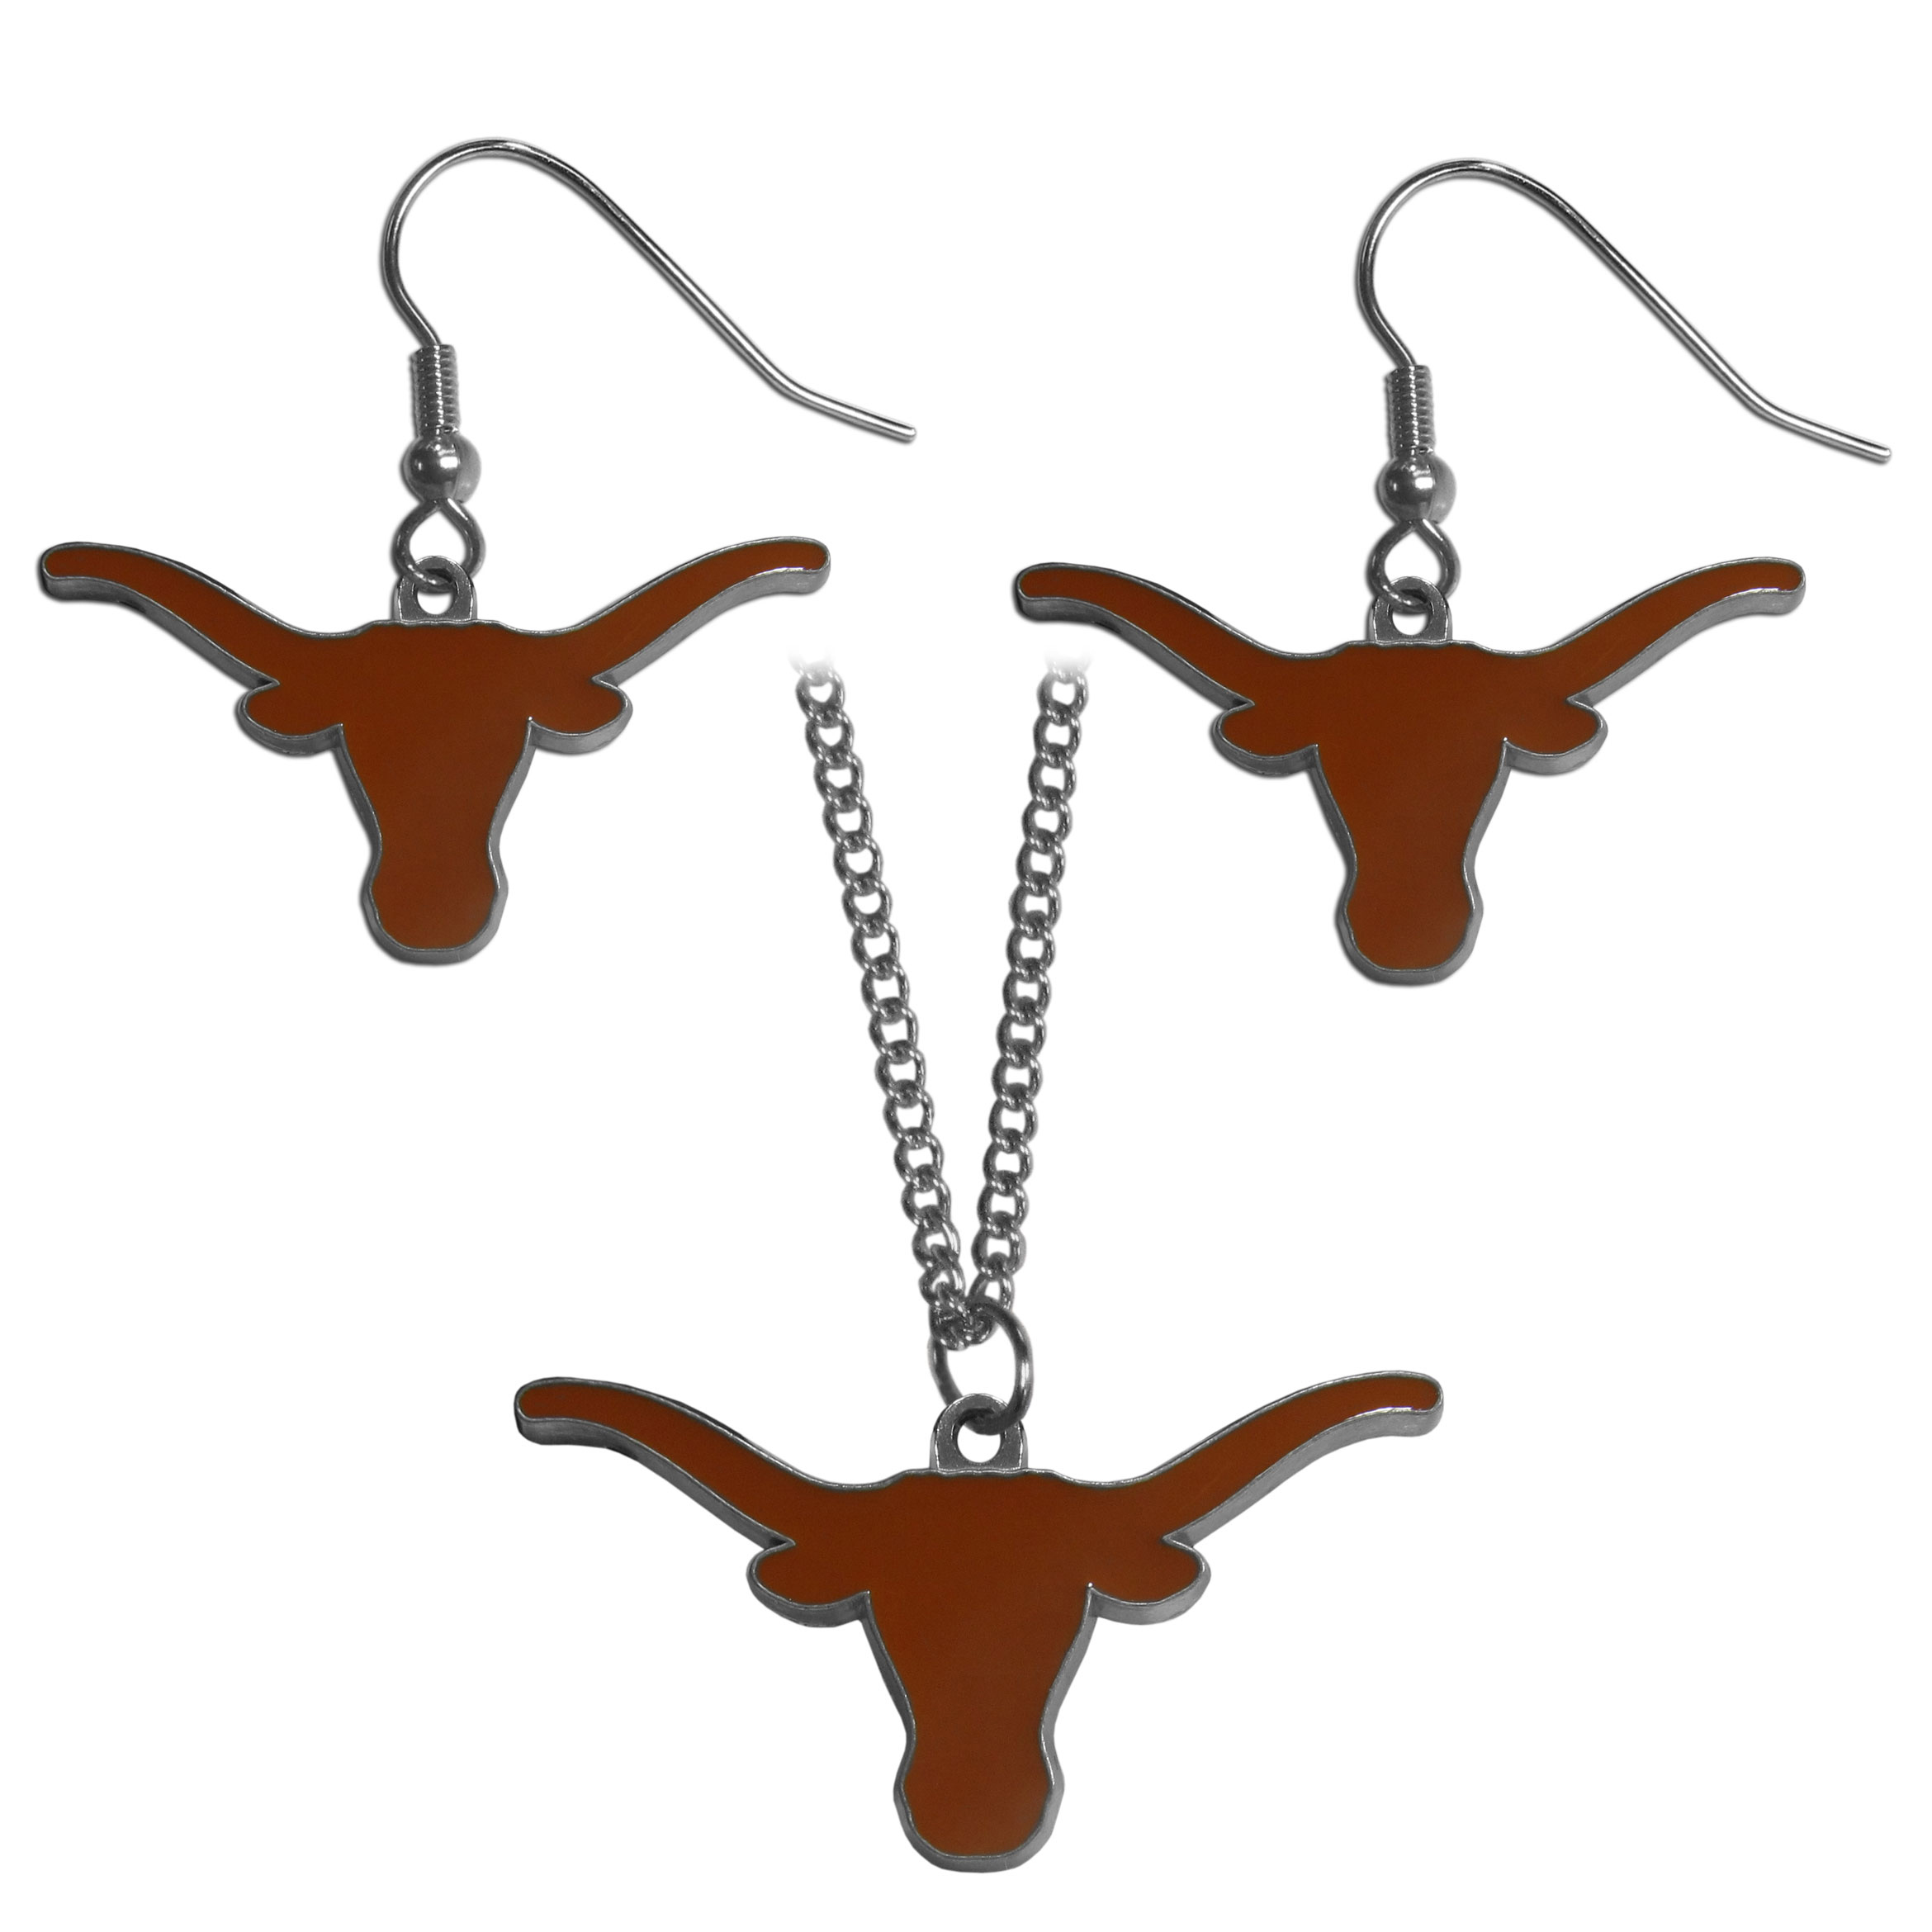 Texas Longhorns Dangle Earrings and Chain Necklace Set - This classic jewelry set contains are most popular Texas Longhorns dangle earrings and 22 inch chain necklace. The trendy, dangle earrings are lightweight and feature a fully cast metal team charm with enameled team colors. The matching necklace completes this fashion forward combo and is a spirited set that is perfect for game day but nice enough for everyday.